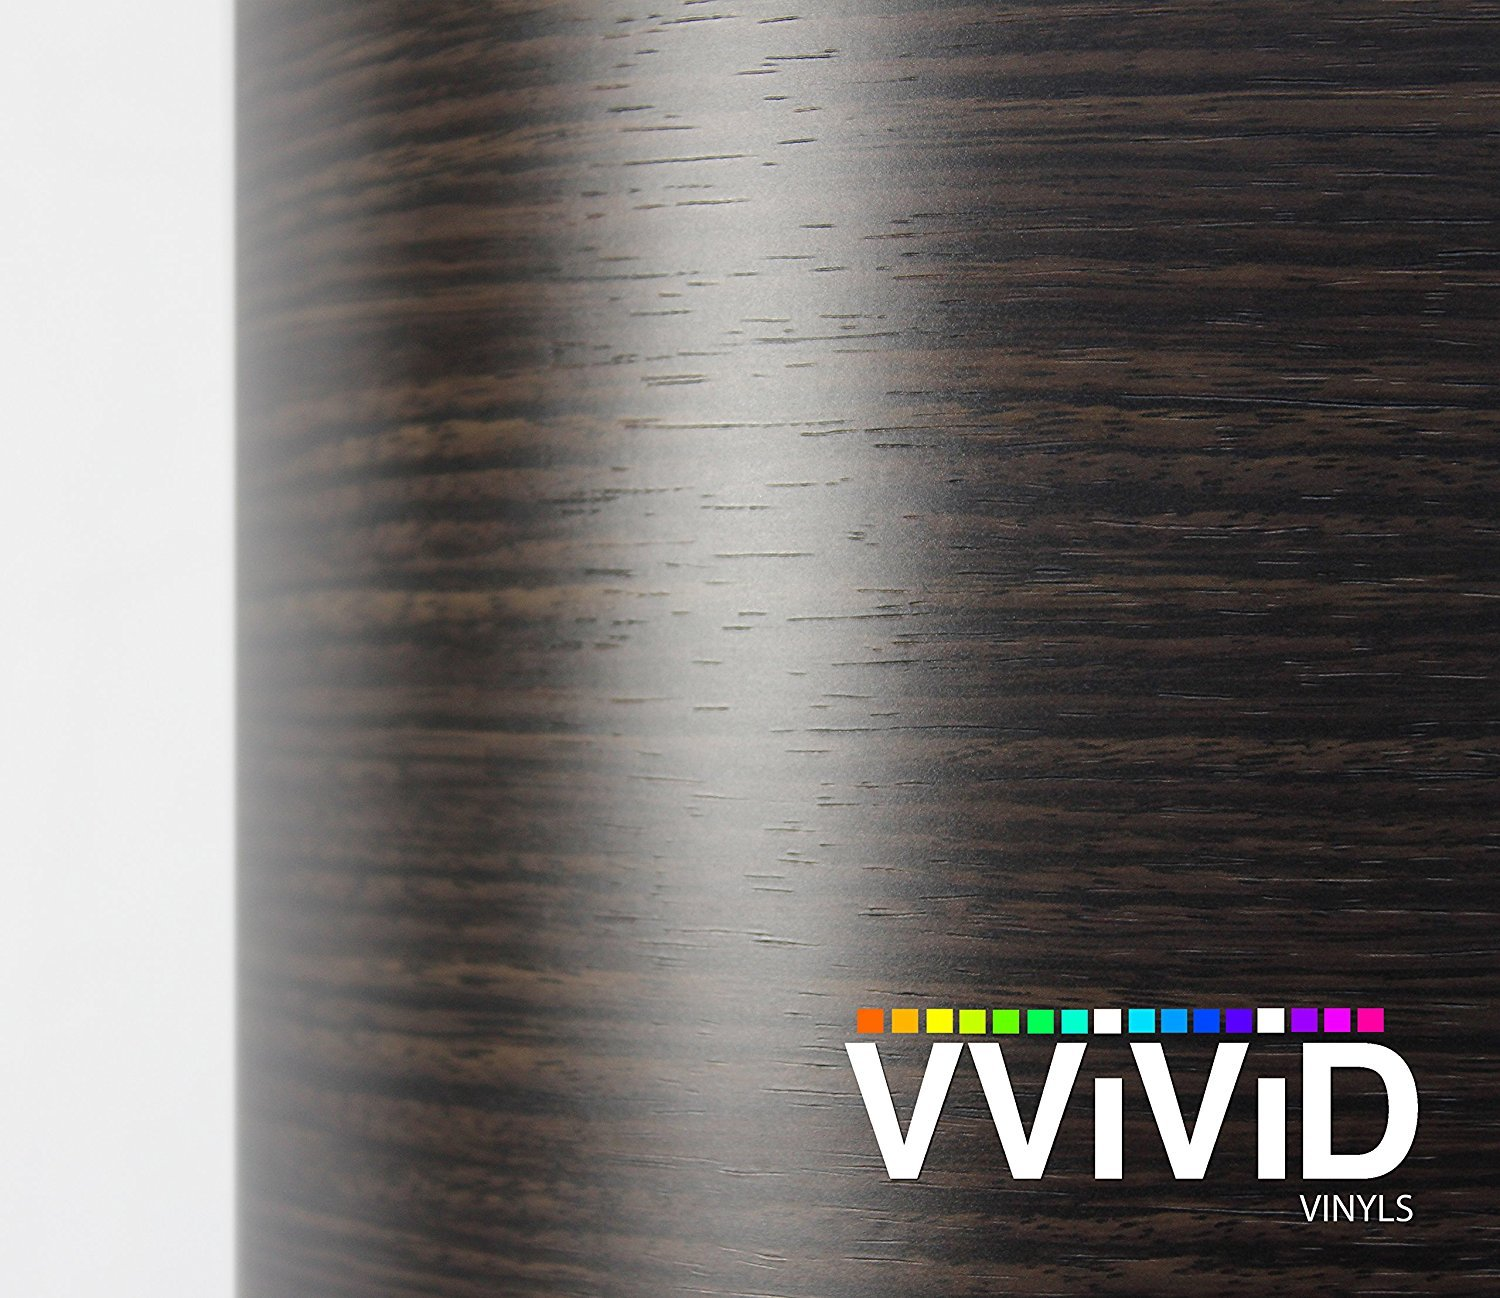 VVIVID Dark Ebony Wood Grain Faux Finish Textured Vinyl Wrap Roll Sheet Film for Home Office Furniture DIY No Mess Easy to Install Air-release Adhesive (1ft x 48') BHBUKPPAZINH969